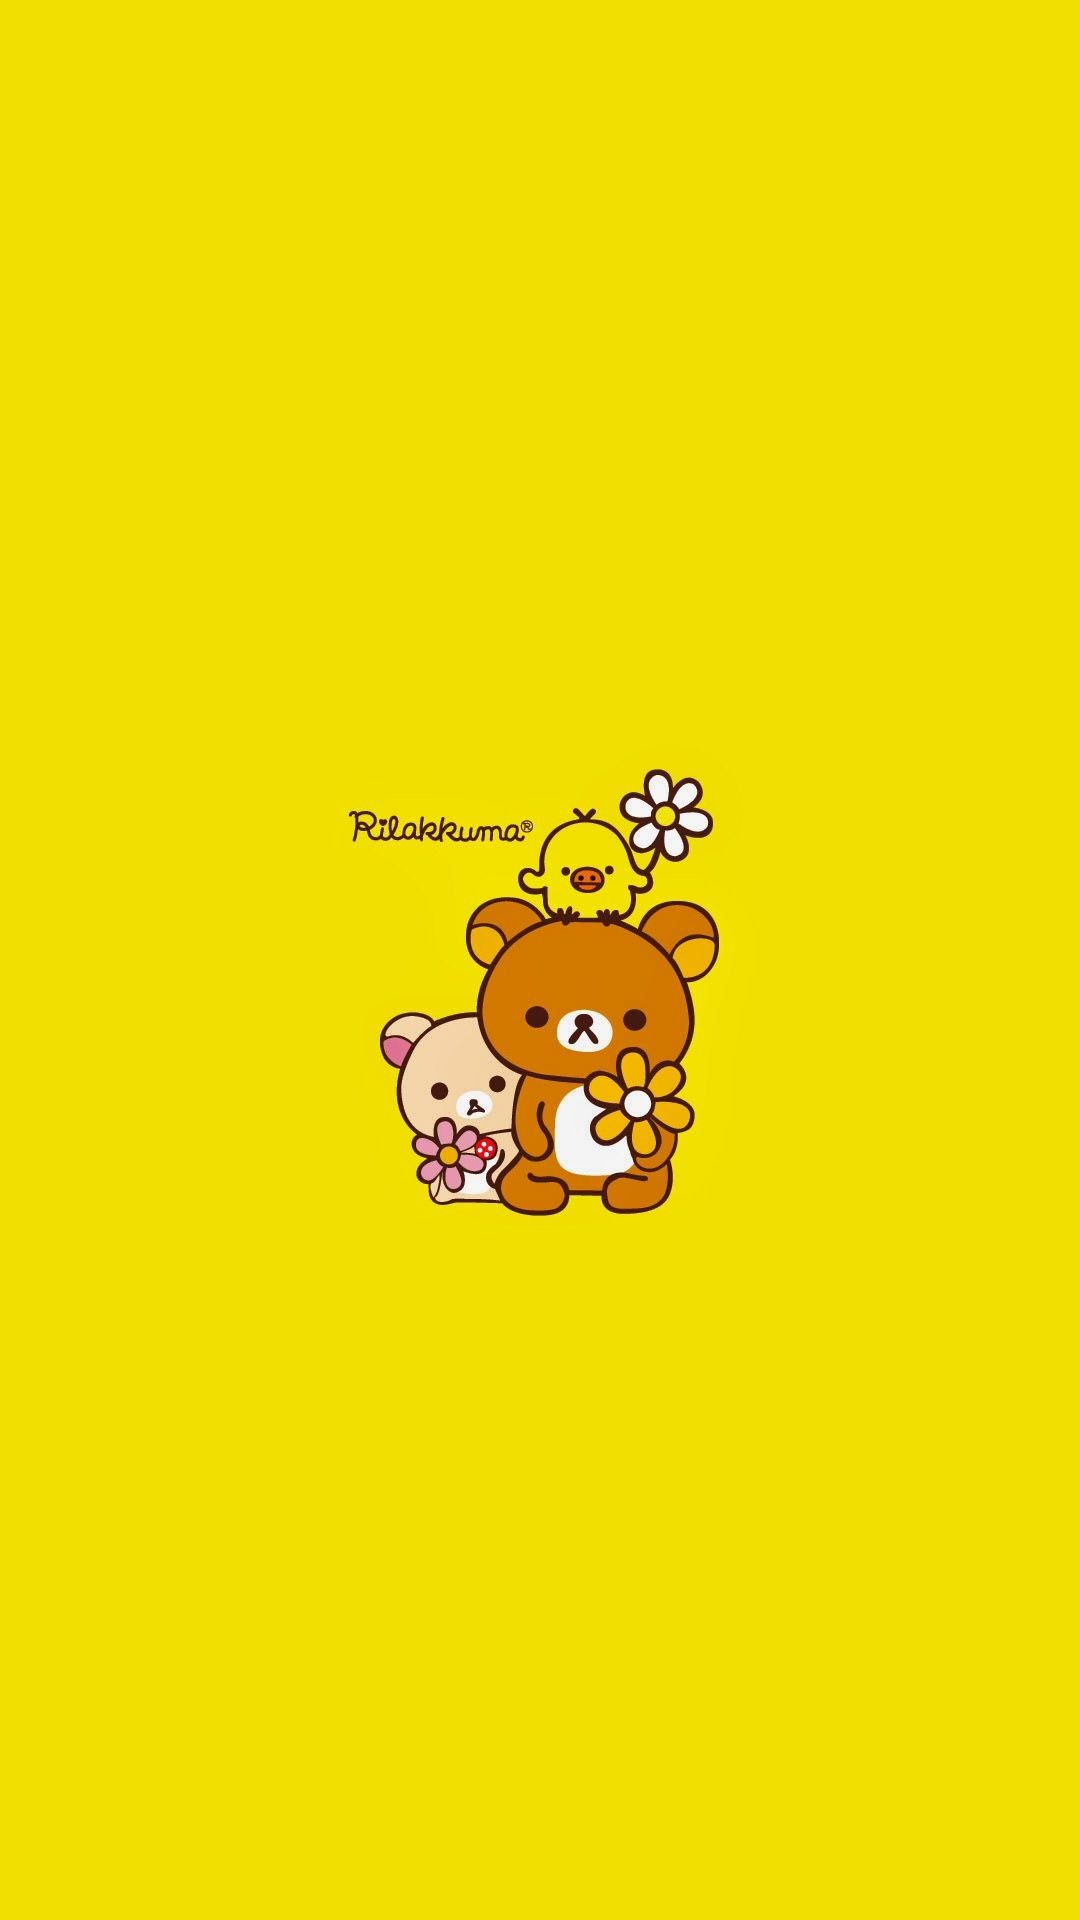 Res: 1080x1920, Cellphone Wallpaper, Rilakkuma, Iphone Wallpapers, Teddy Bears, Hello  Kitty, Kawaii, Backgrounds, Kawaii Cute, Teddybear